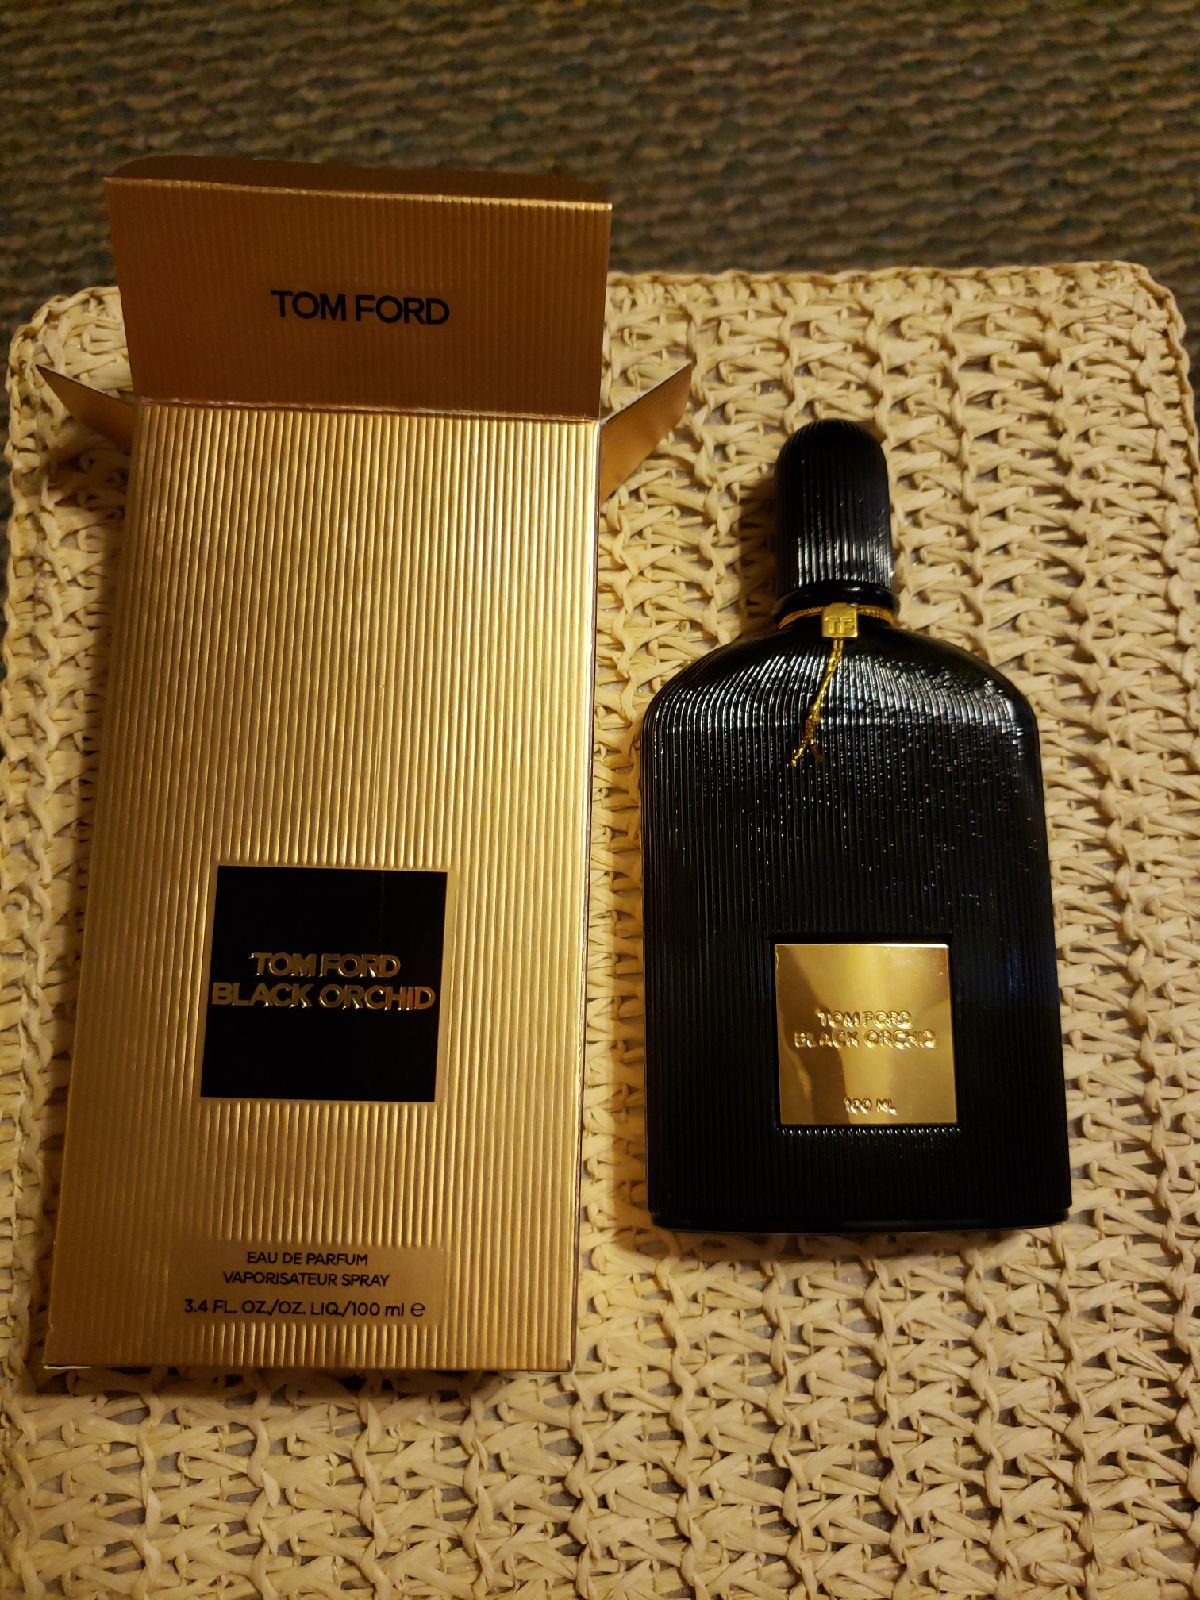 New Tom Ford Black Orchid 3 4 Fl Oz Tom Ford Black Orchid Perfume Scents Black Orchid